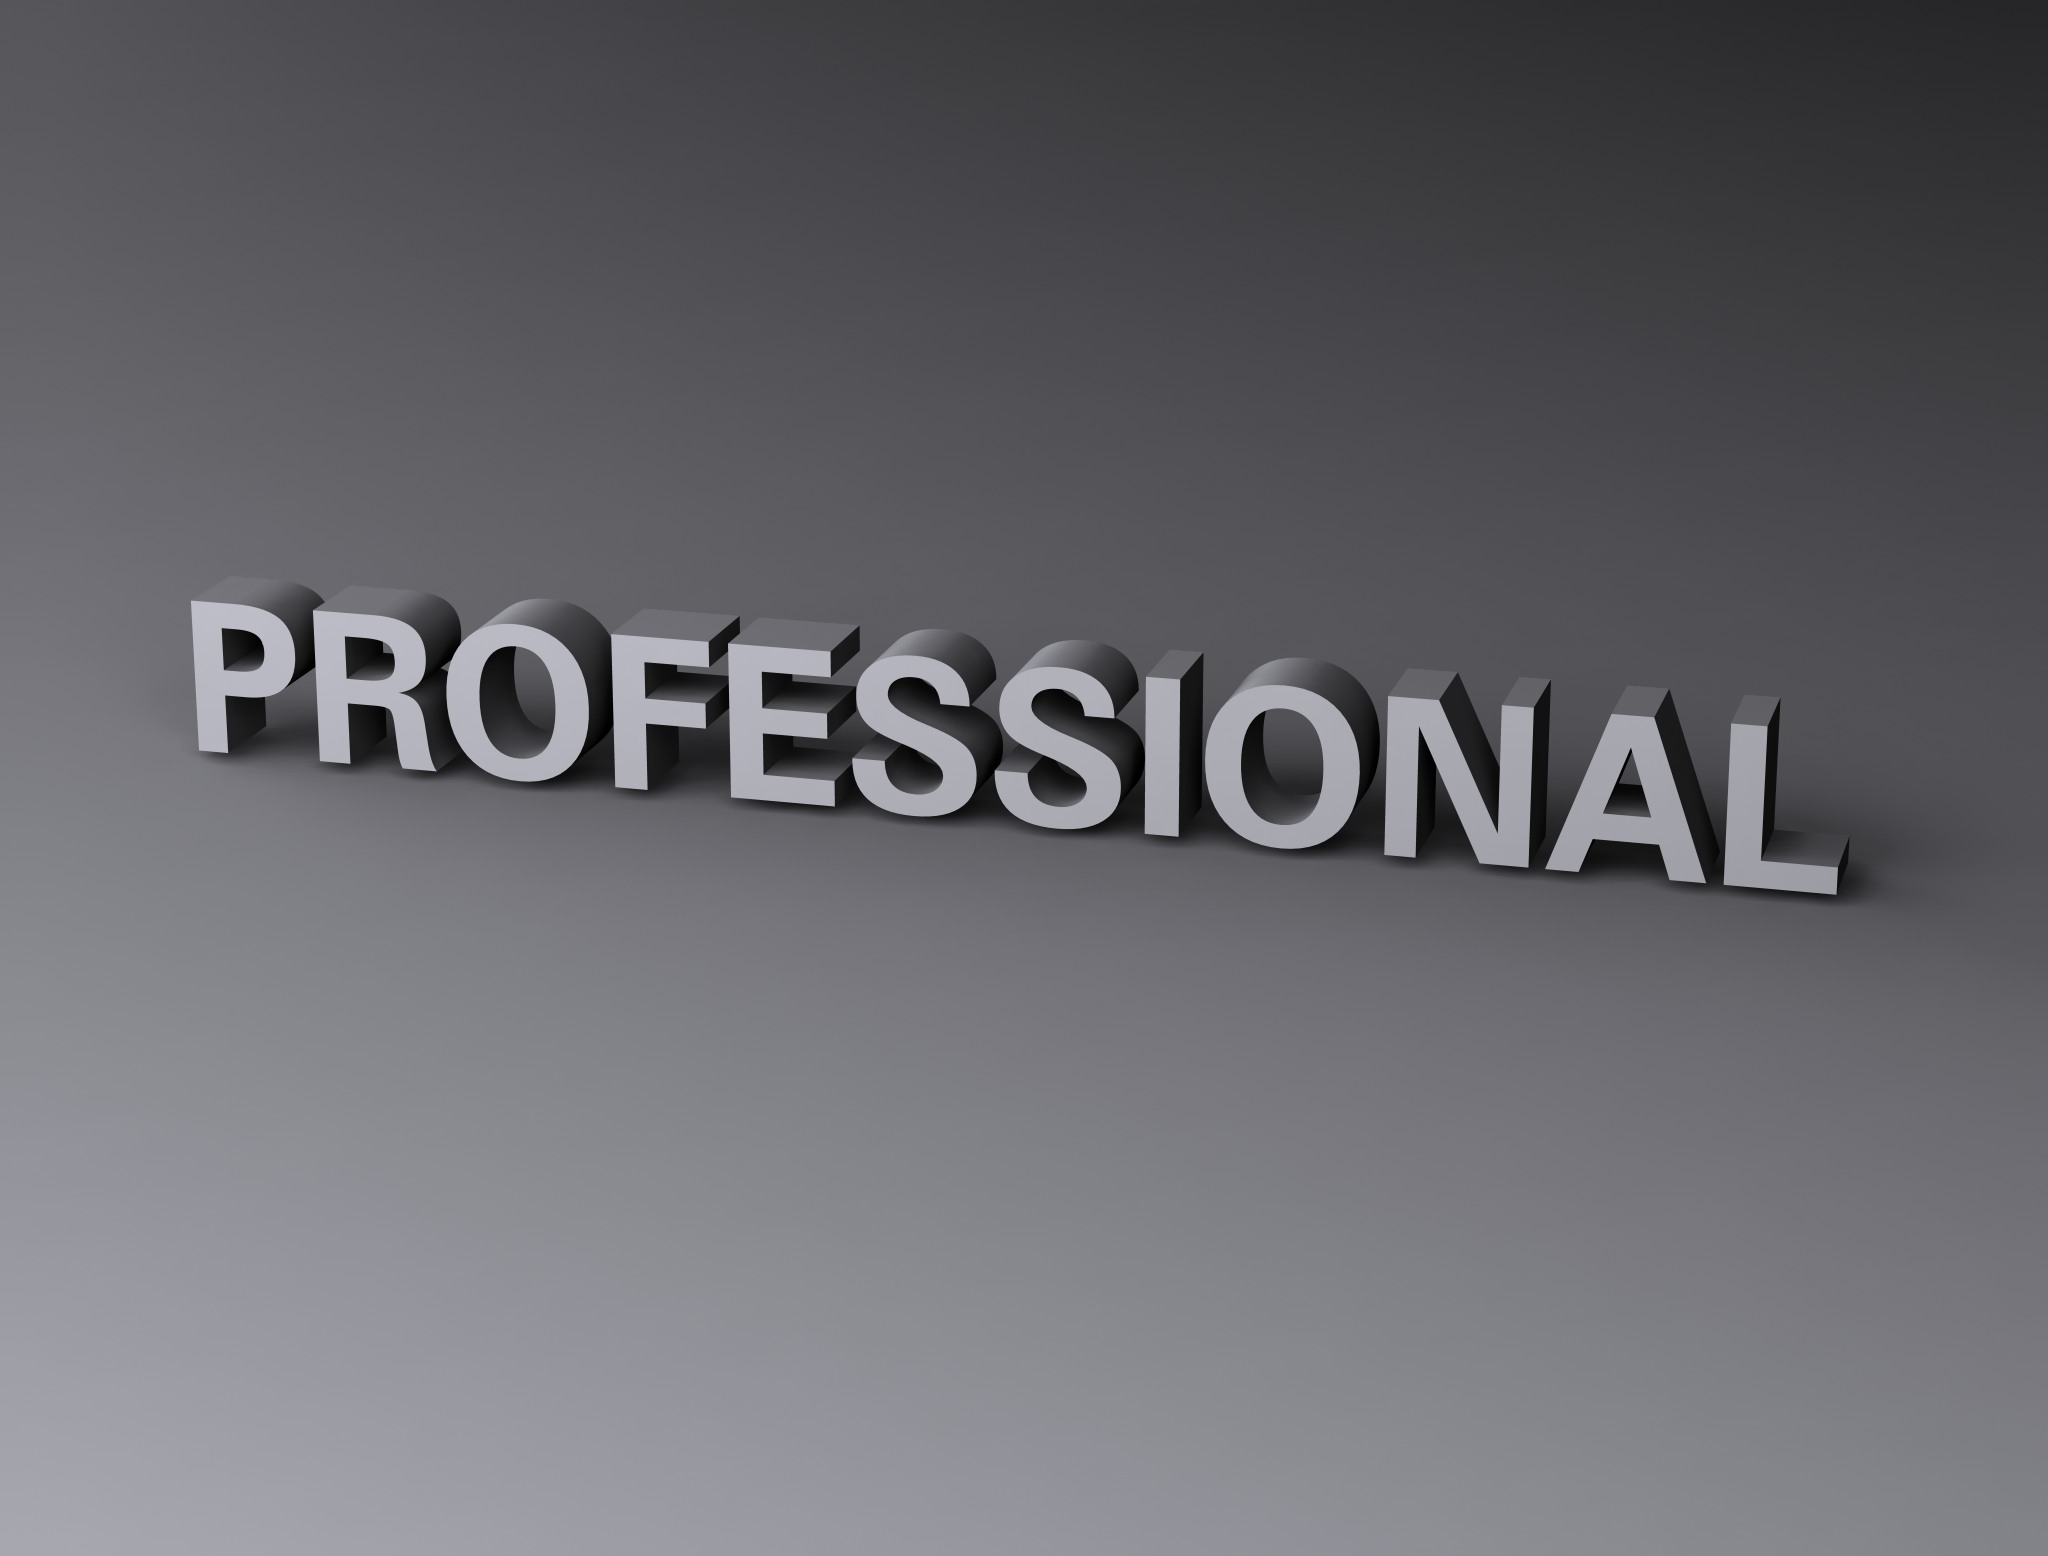 Professional, 3d, Render, Text, Typography, HQ Photo